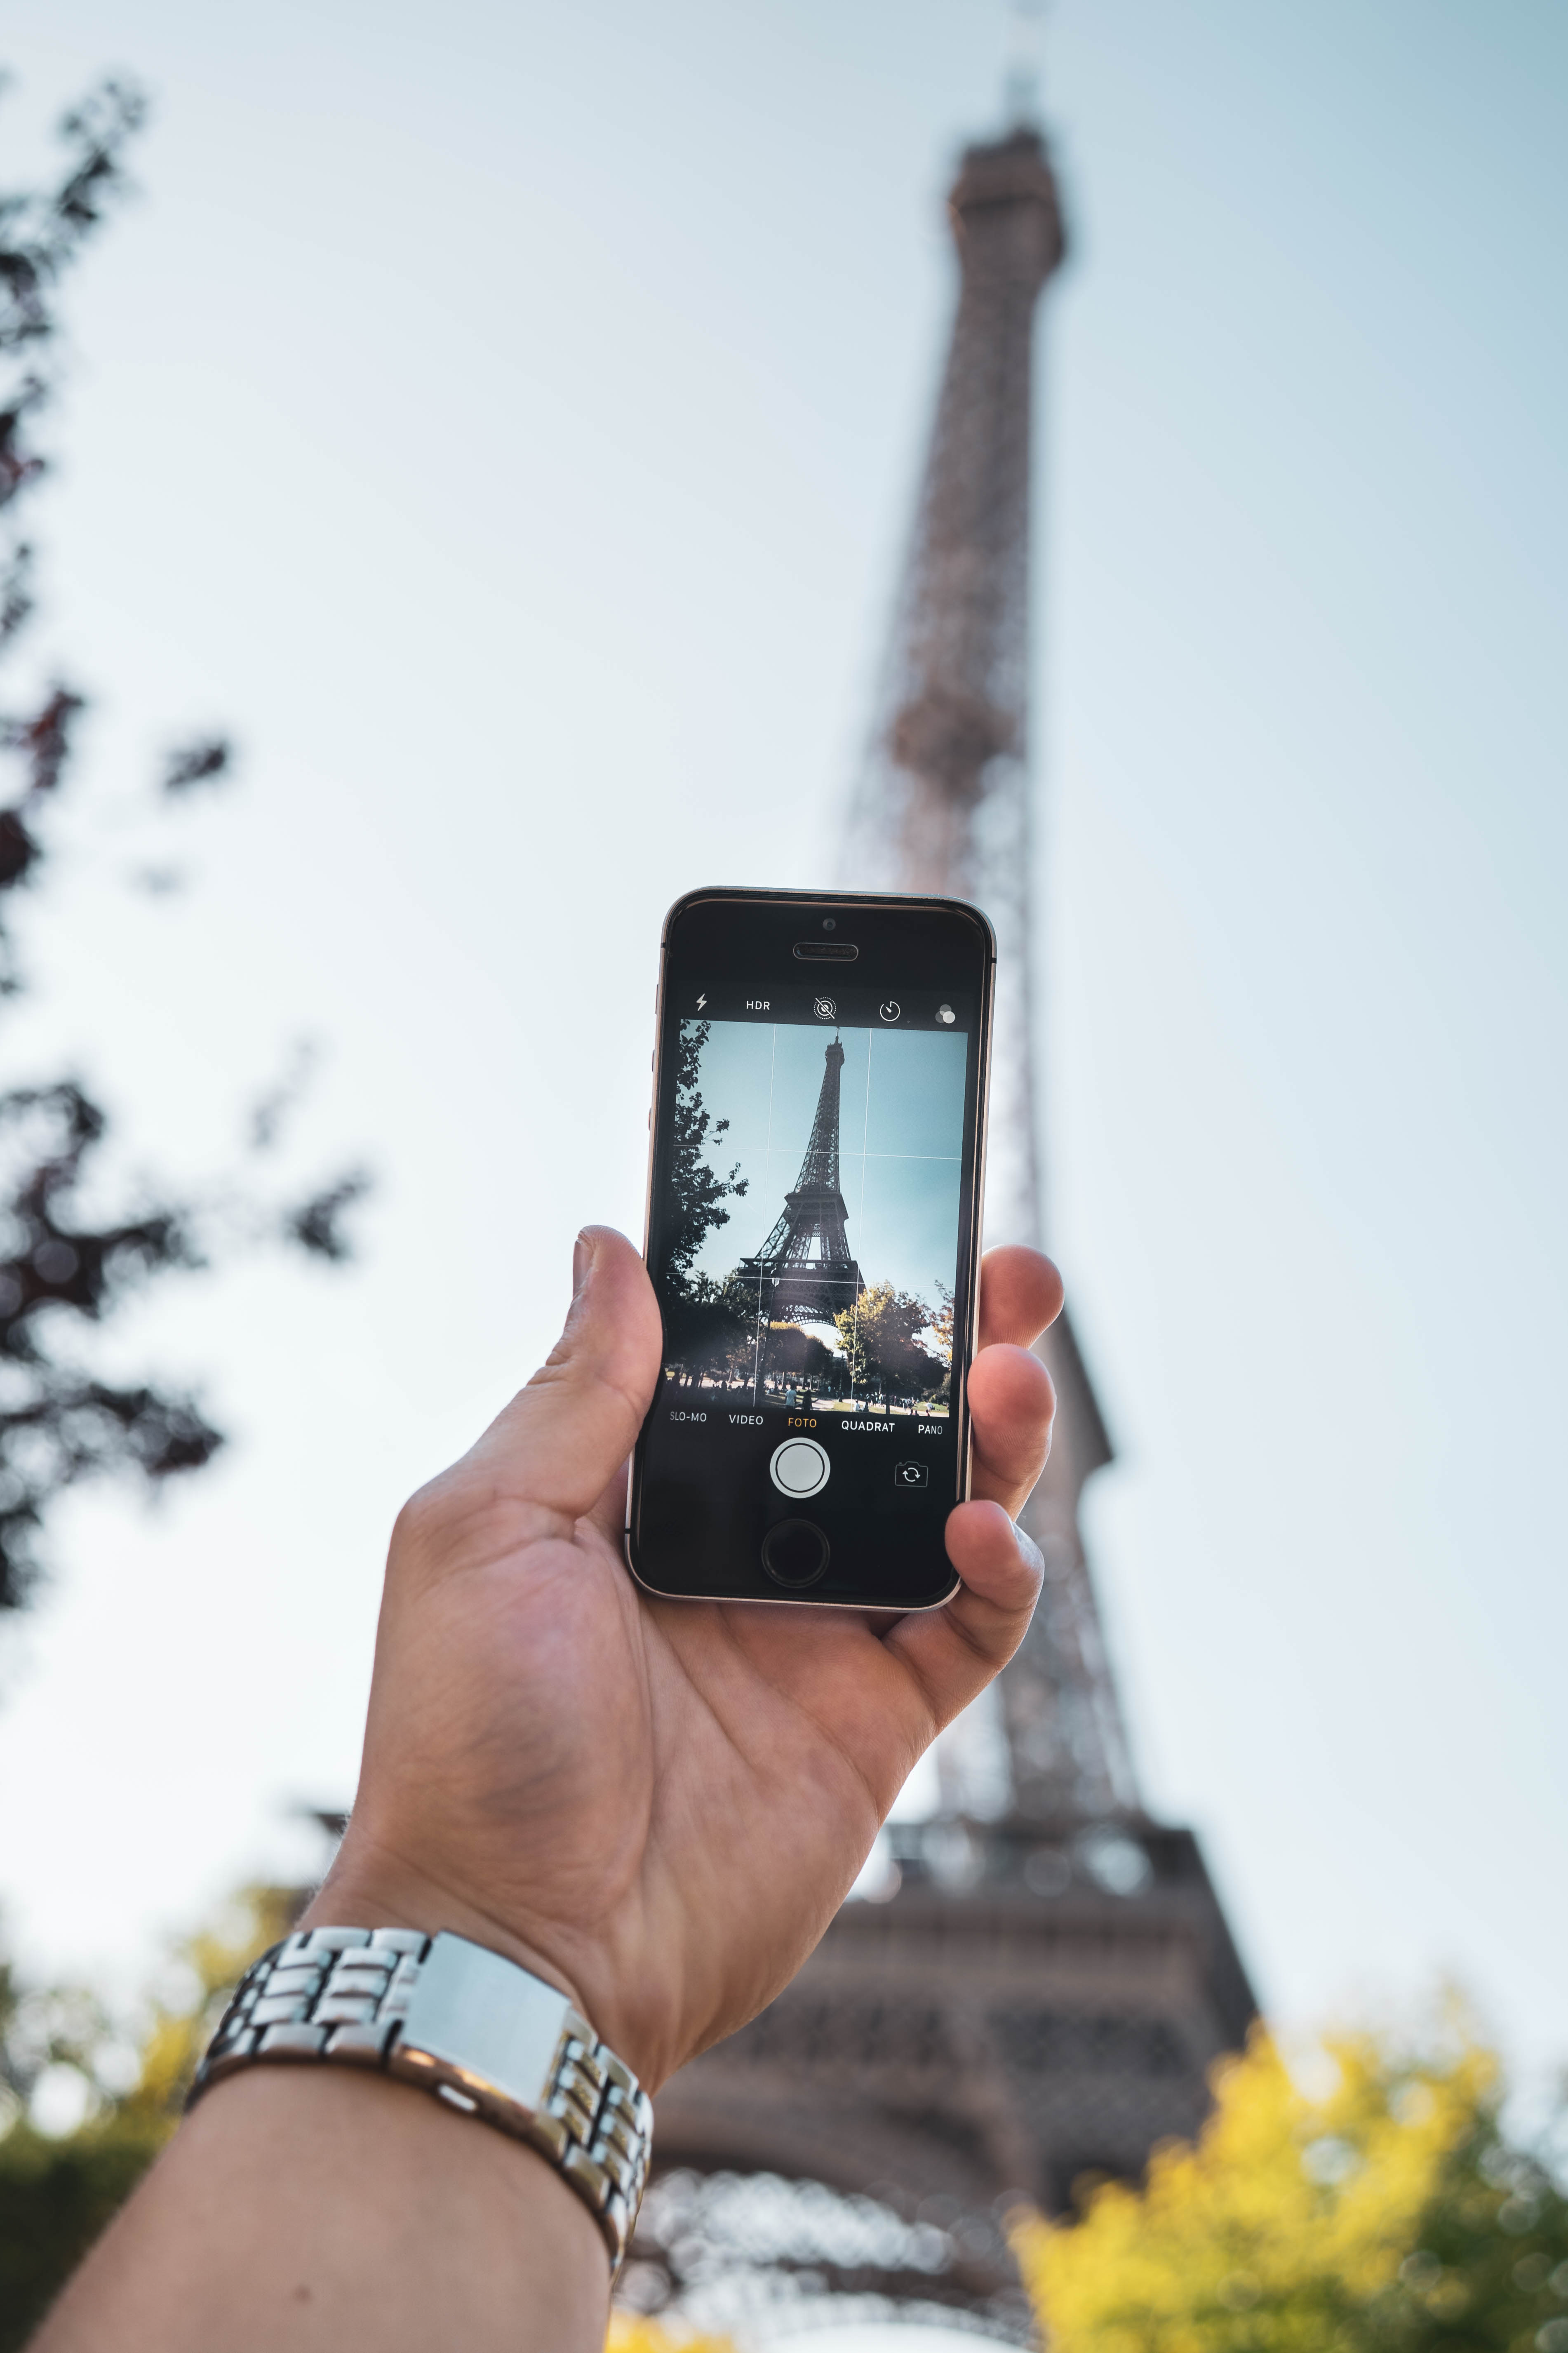 Hd City Wallpapers For Mobile Free Stock Photo Of Blur Camera Cellphone